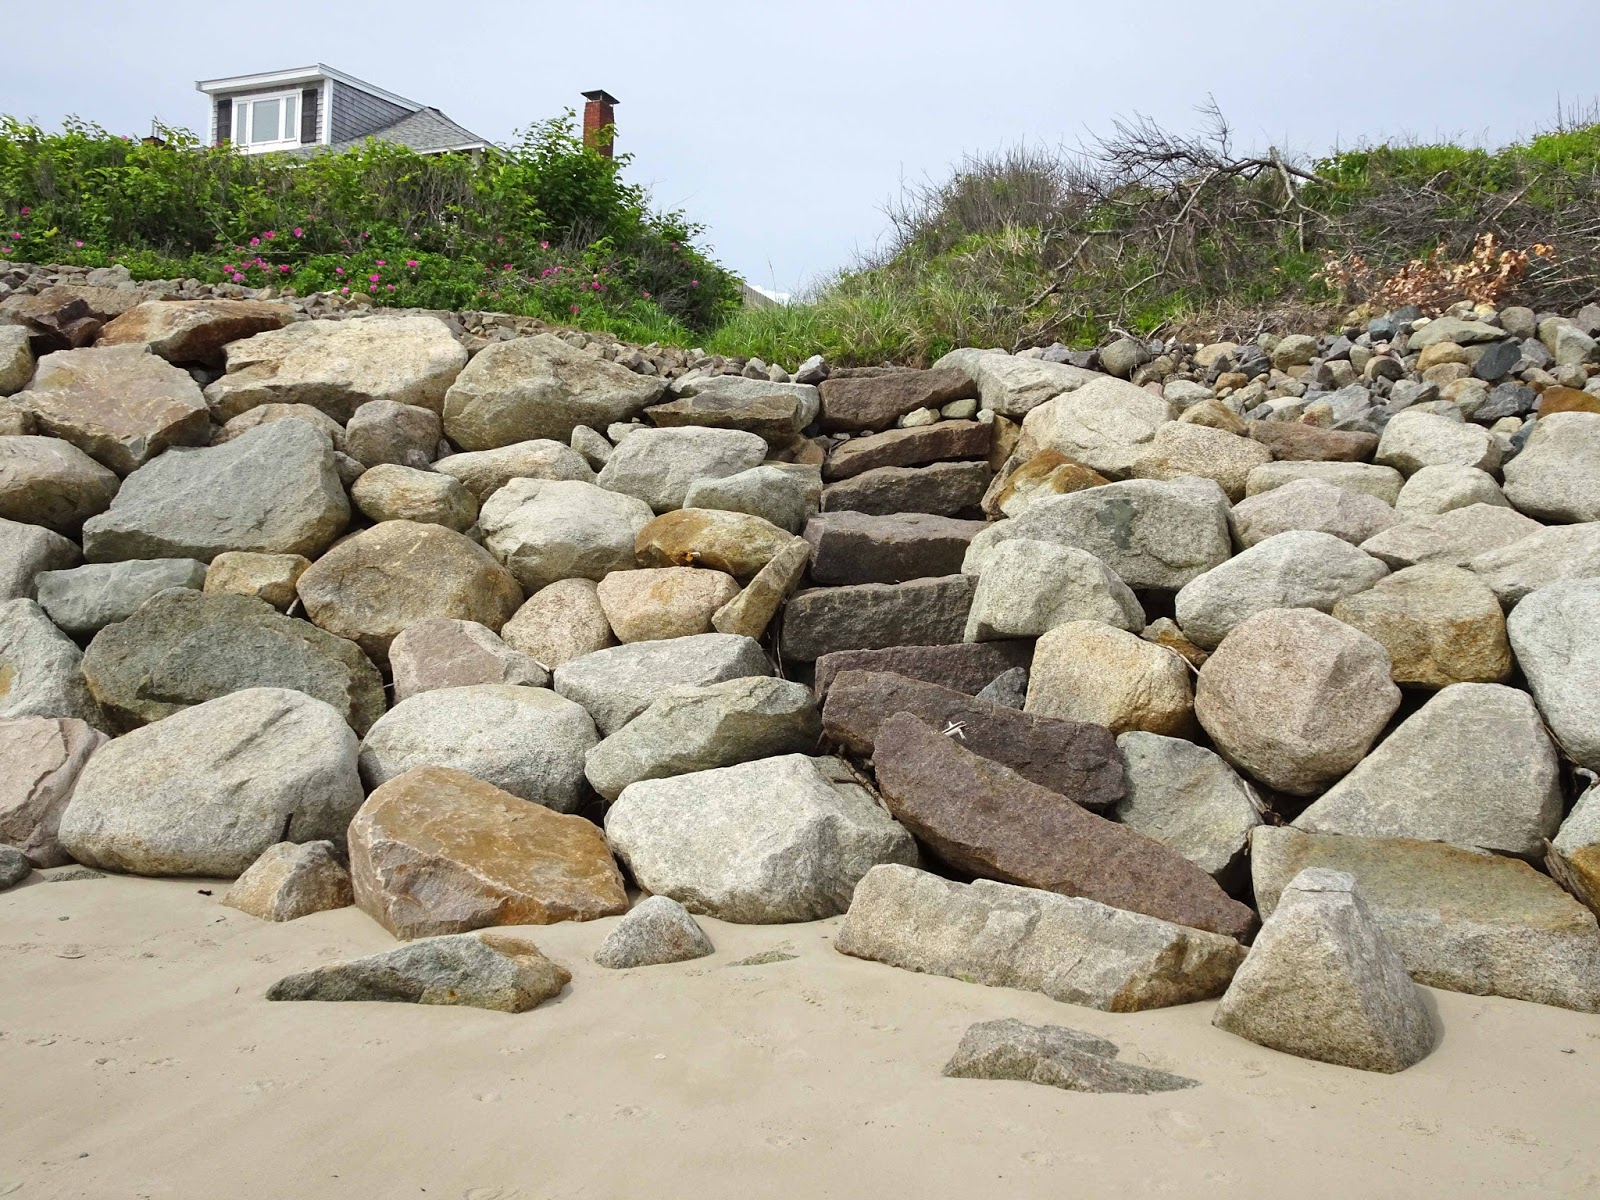 Joe S Retirement Blog Battling Bluff Erosion Manomet